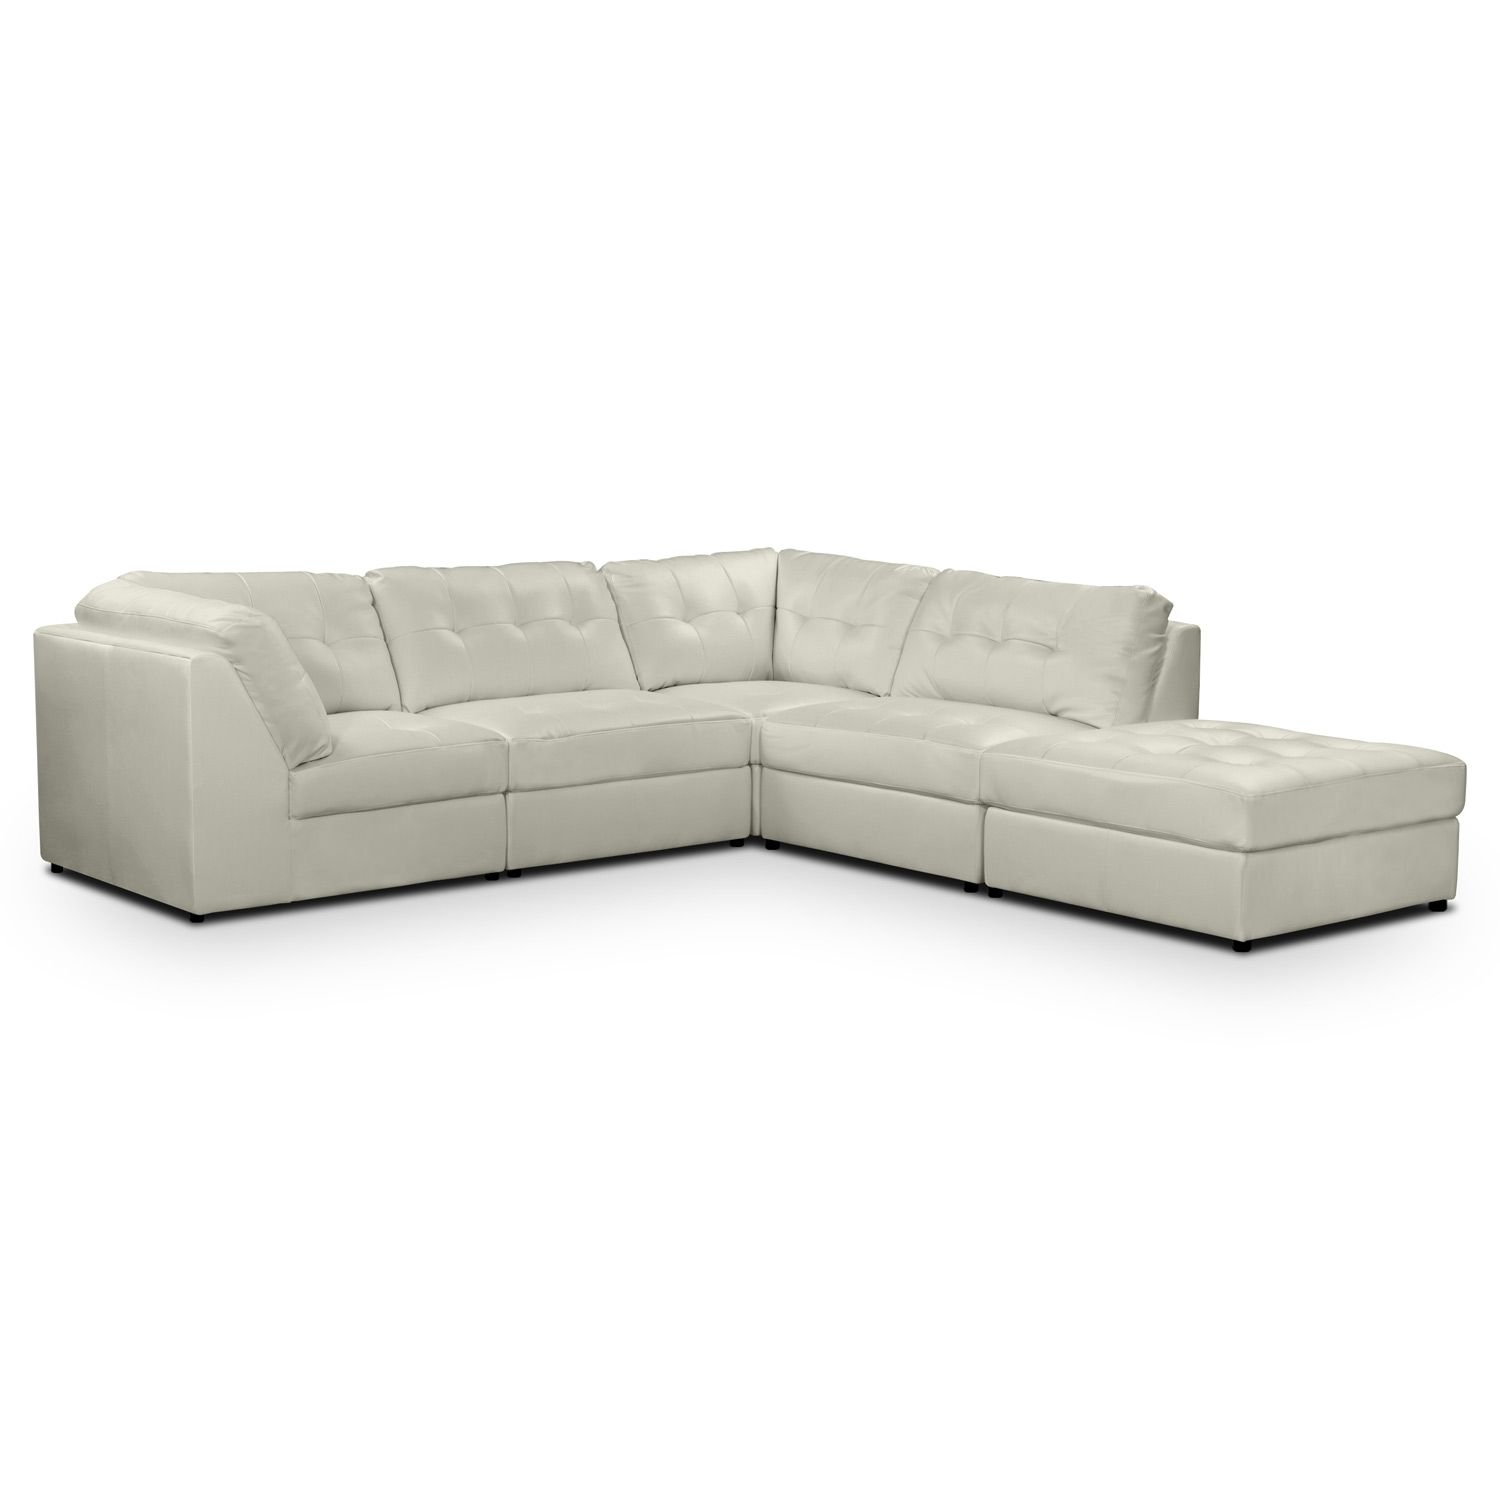 Sectional - Value City Furniture  sc 1 st  Pinterest : value city leather sectionals - Sectionals, Sofas & Couches